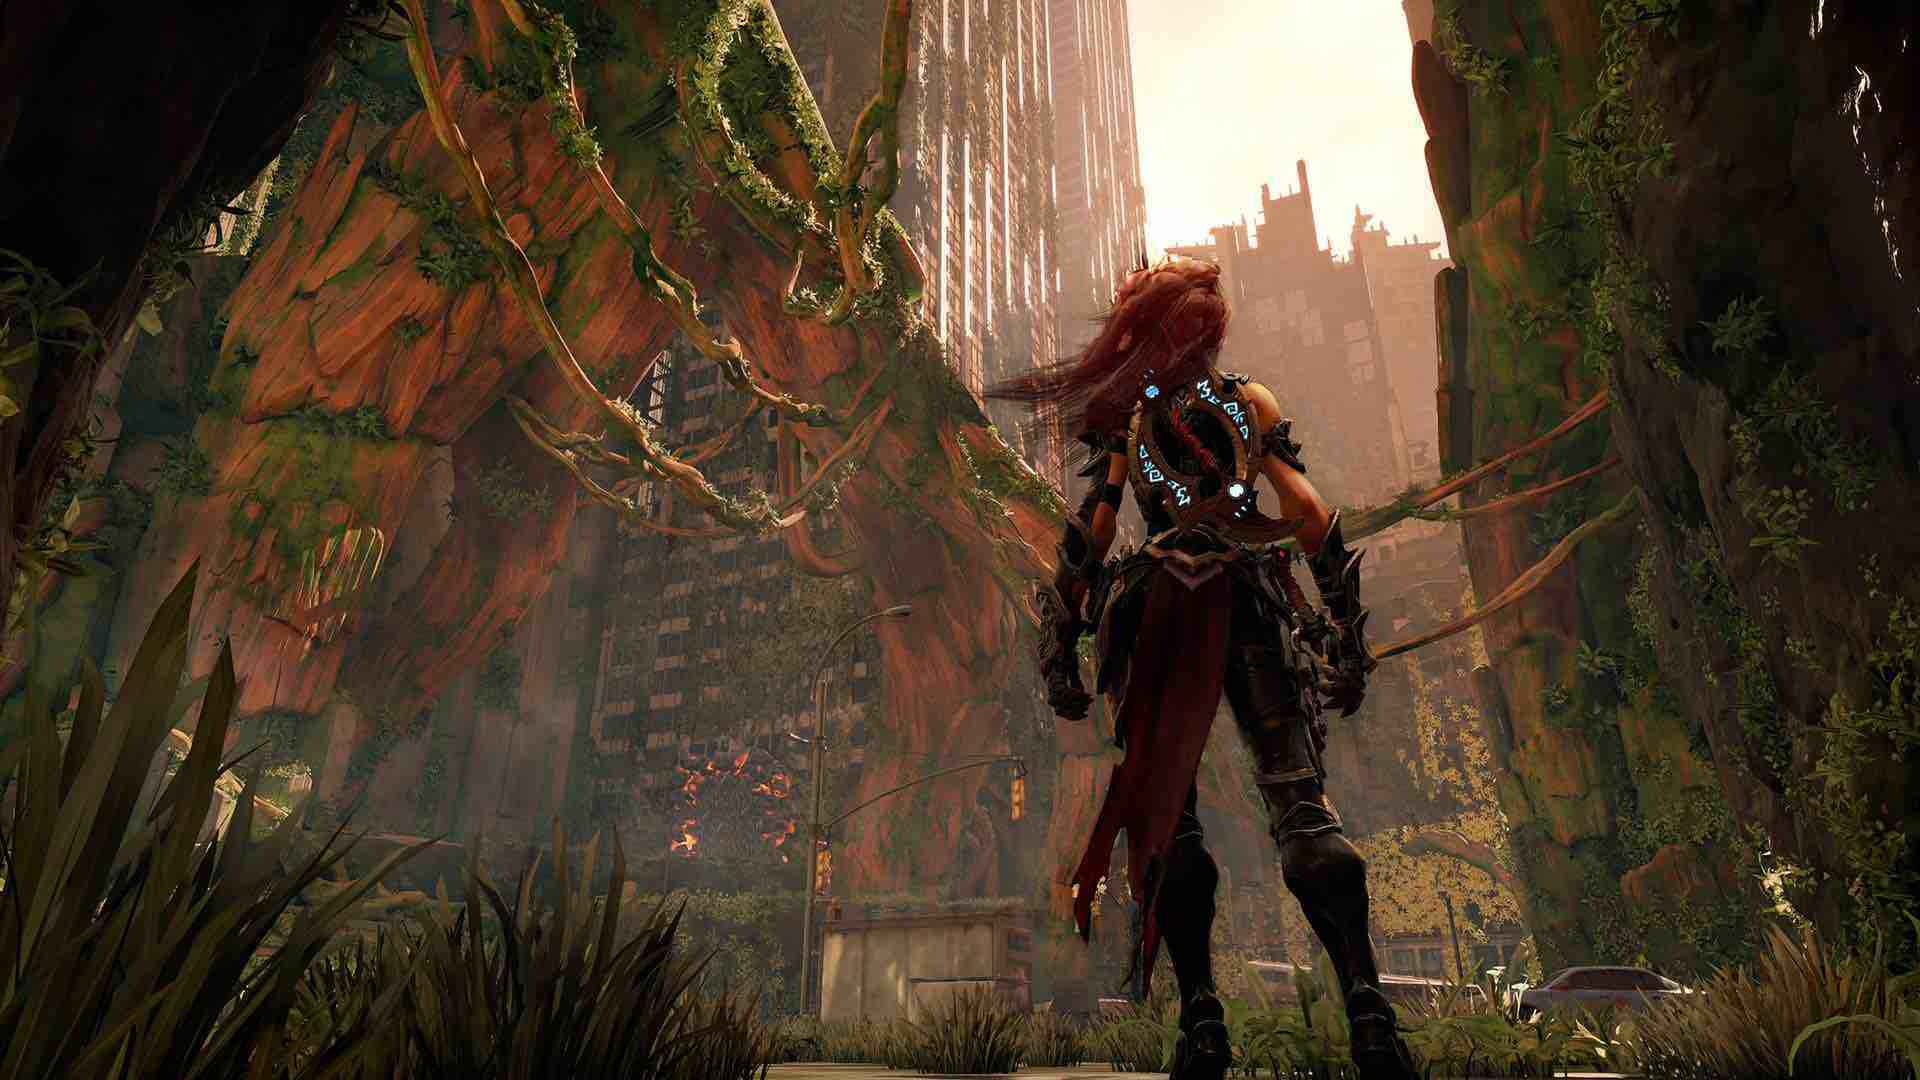 Darksiders 3 Apocalyptic Edition game for Windows PC Latest Version